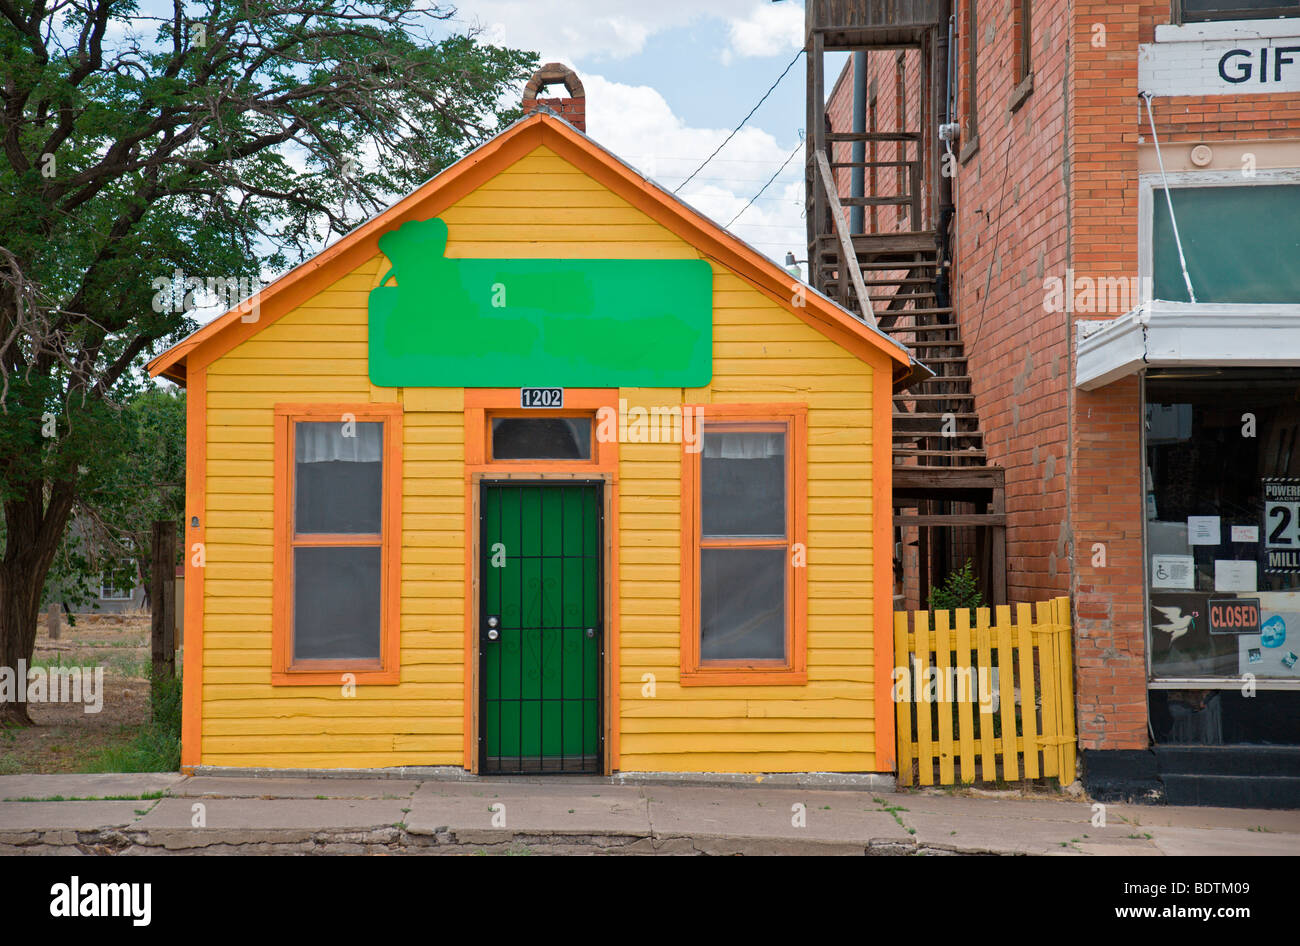 A yellow house with orange trim shines brightly in Carrizozo, New Mexico. - Stock Image